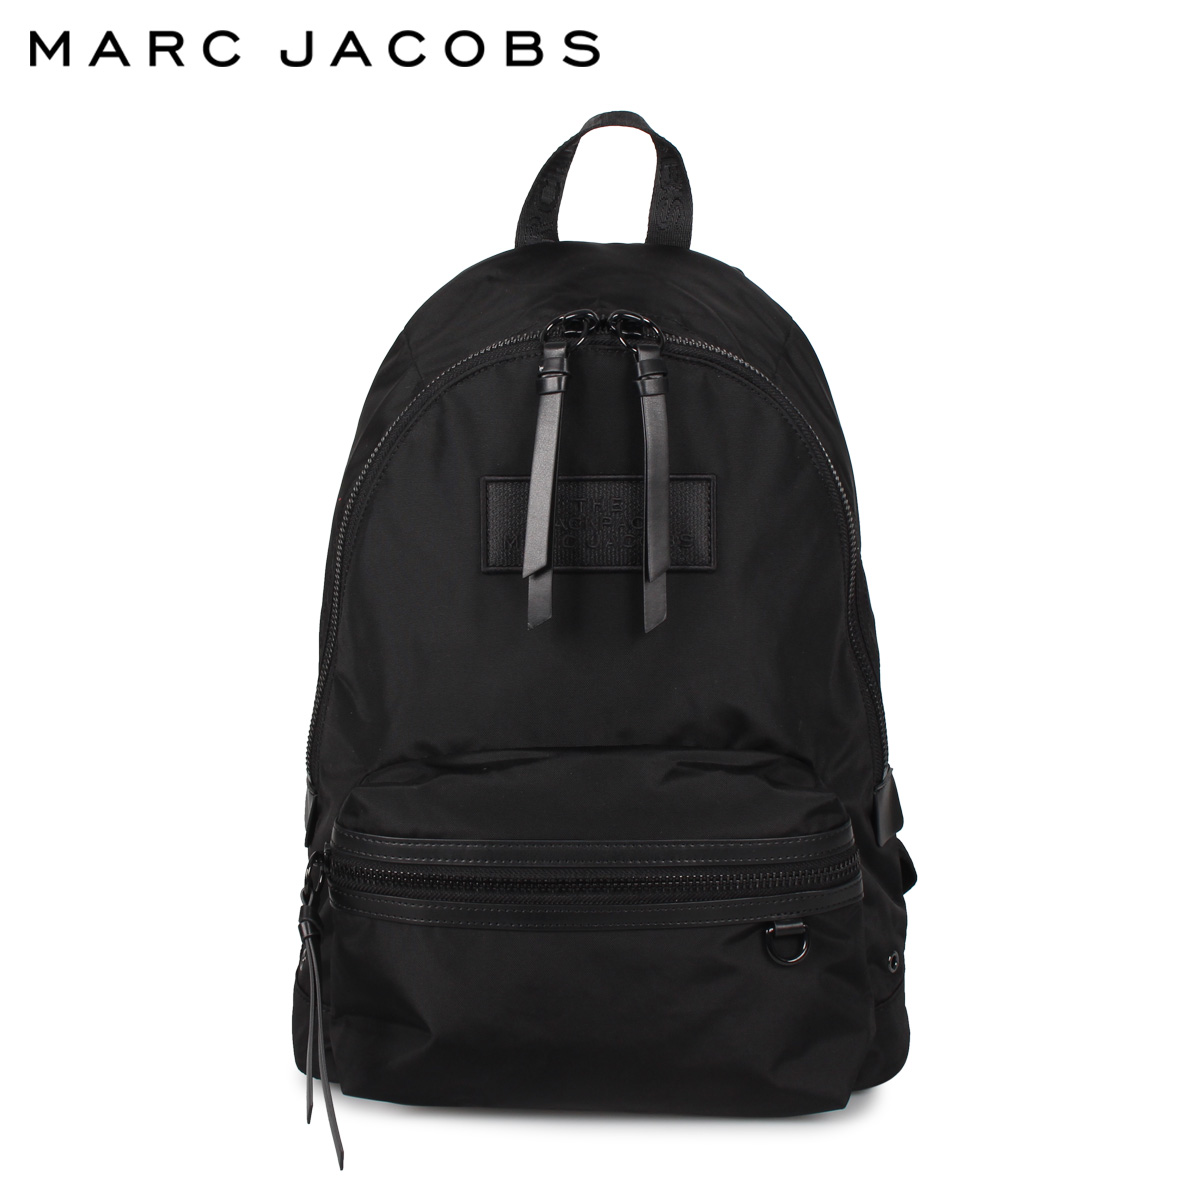 MARC JACOBS マークジェイコブス リュック バッグ バックパック レディース THE DTM BACKPACK LARGE BACKPACK ブラック 黒 M0015772-001 [4/10 再入荷]